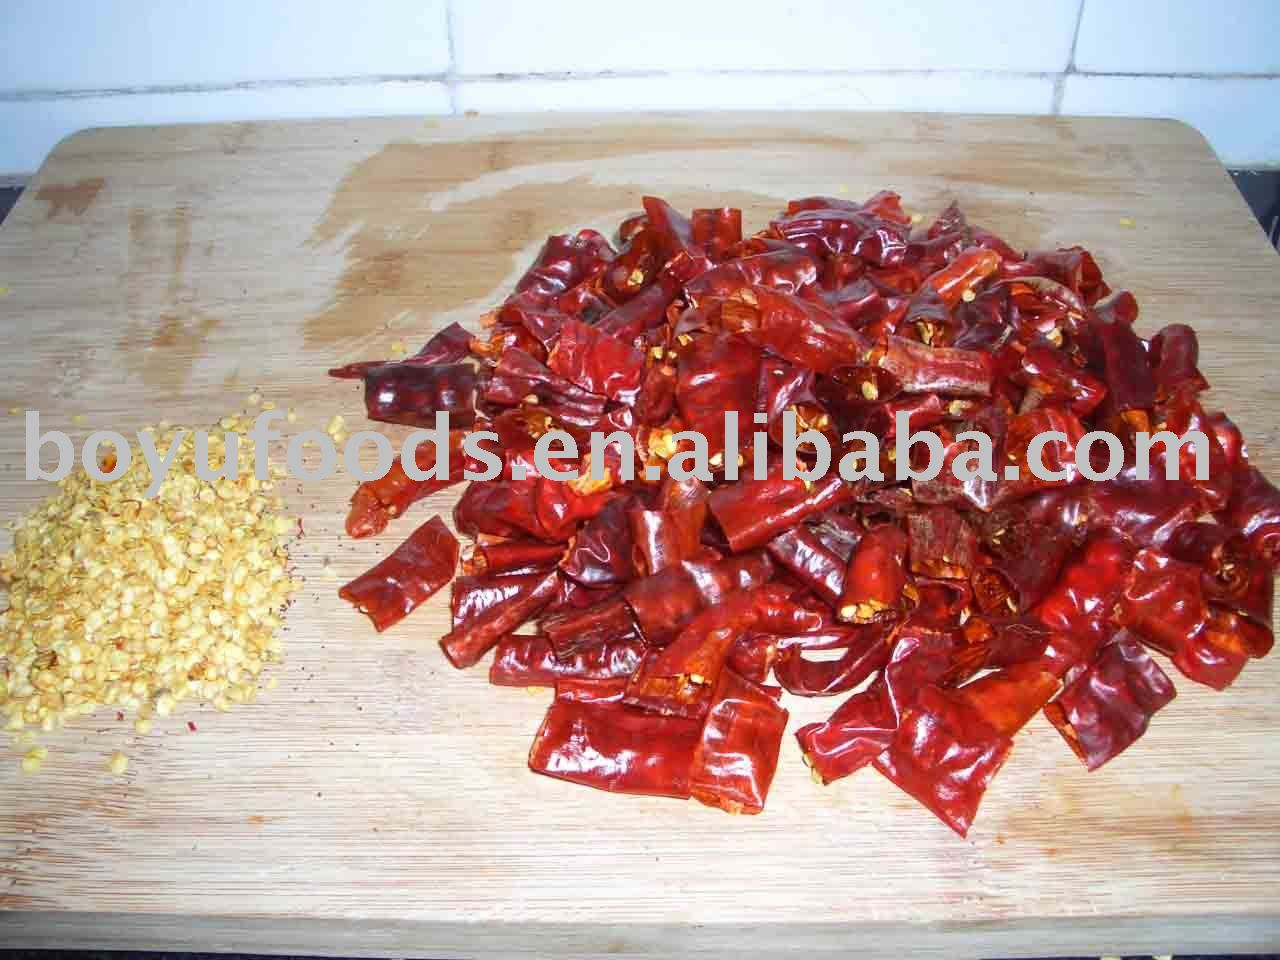 Chili flakes products china chili flakes supplier for Chili flakes